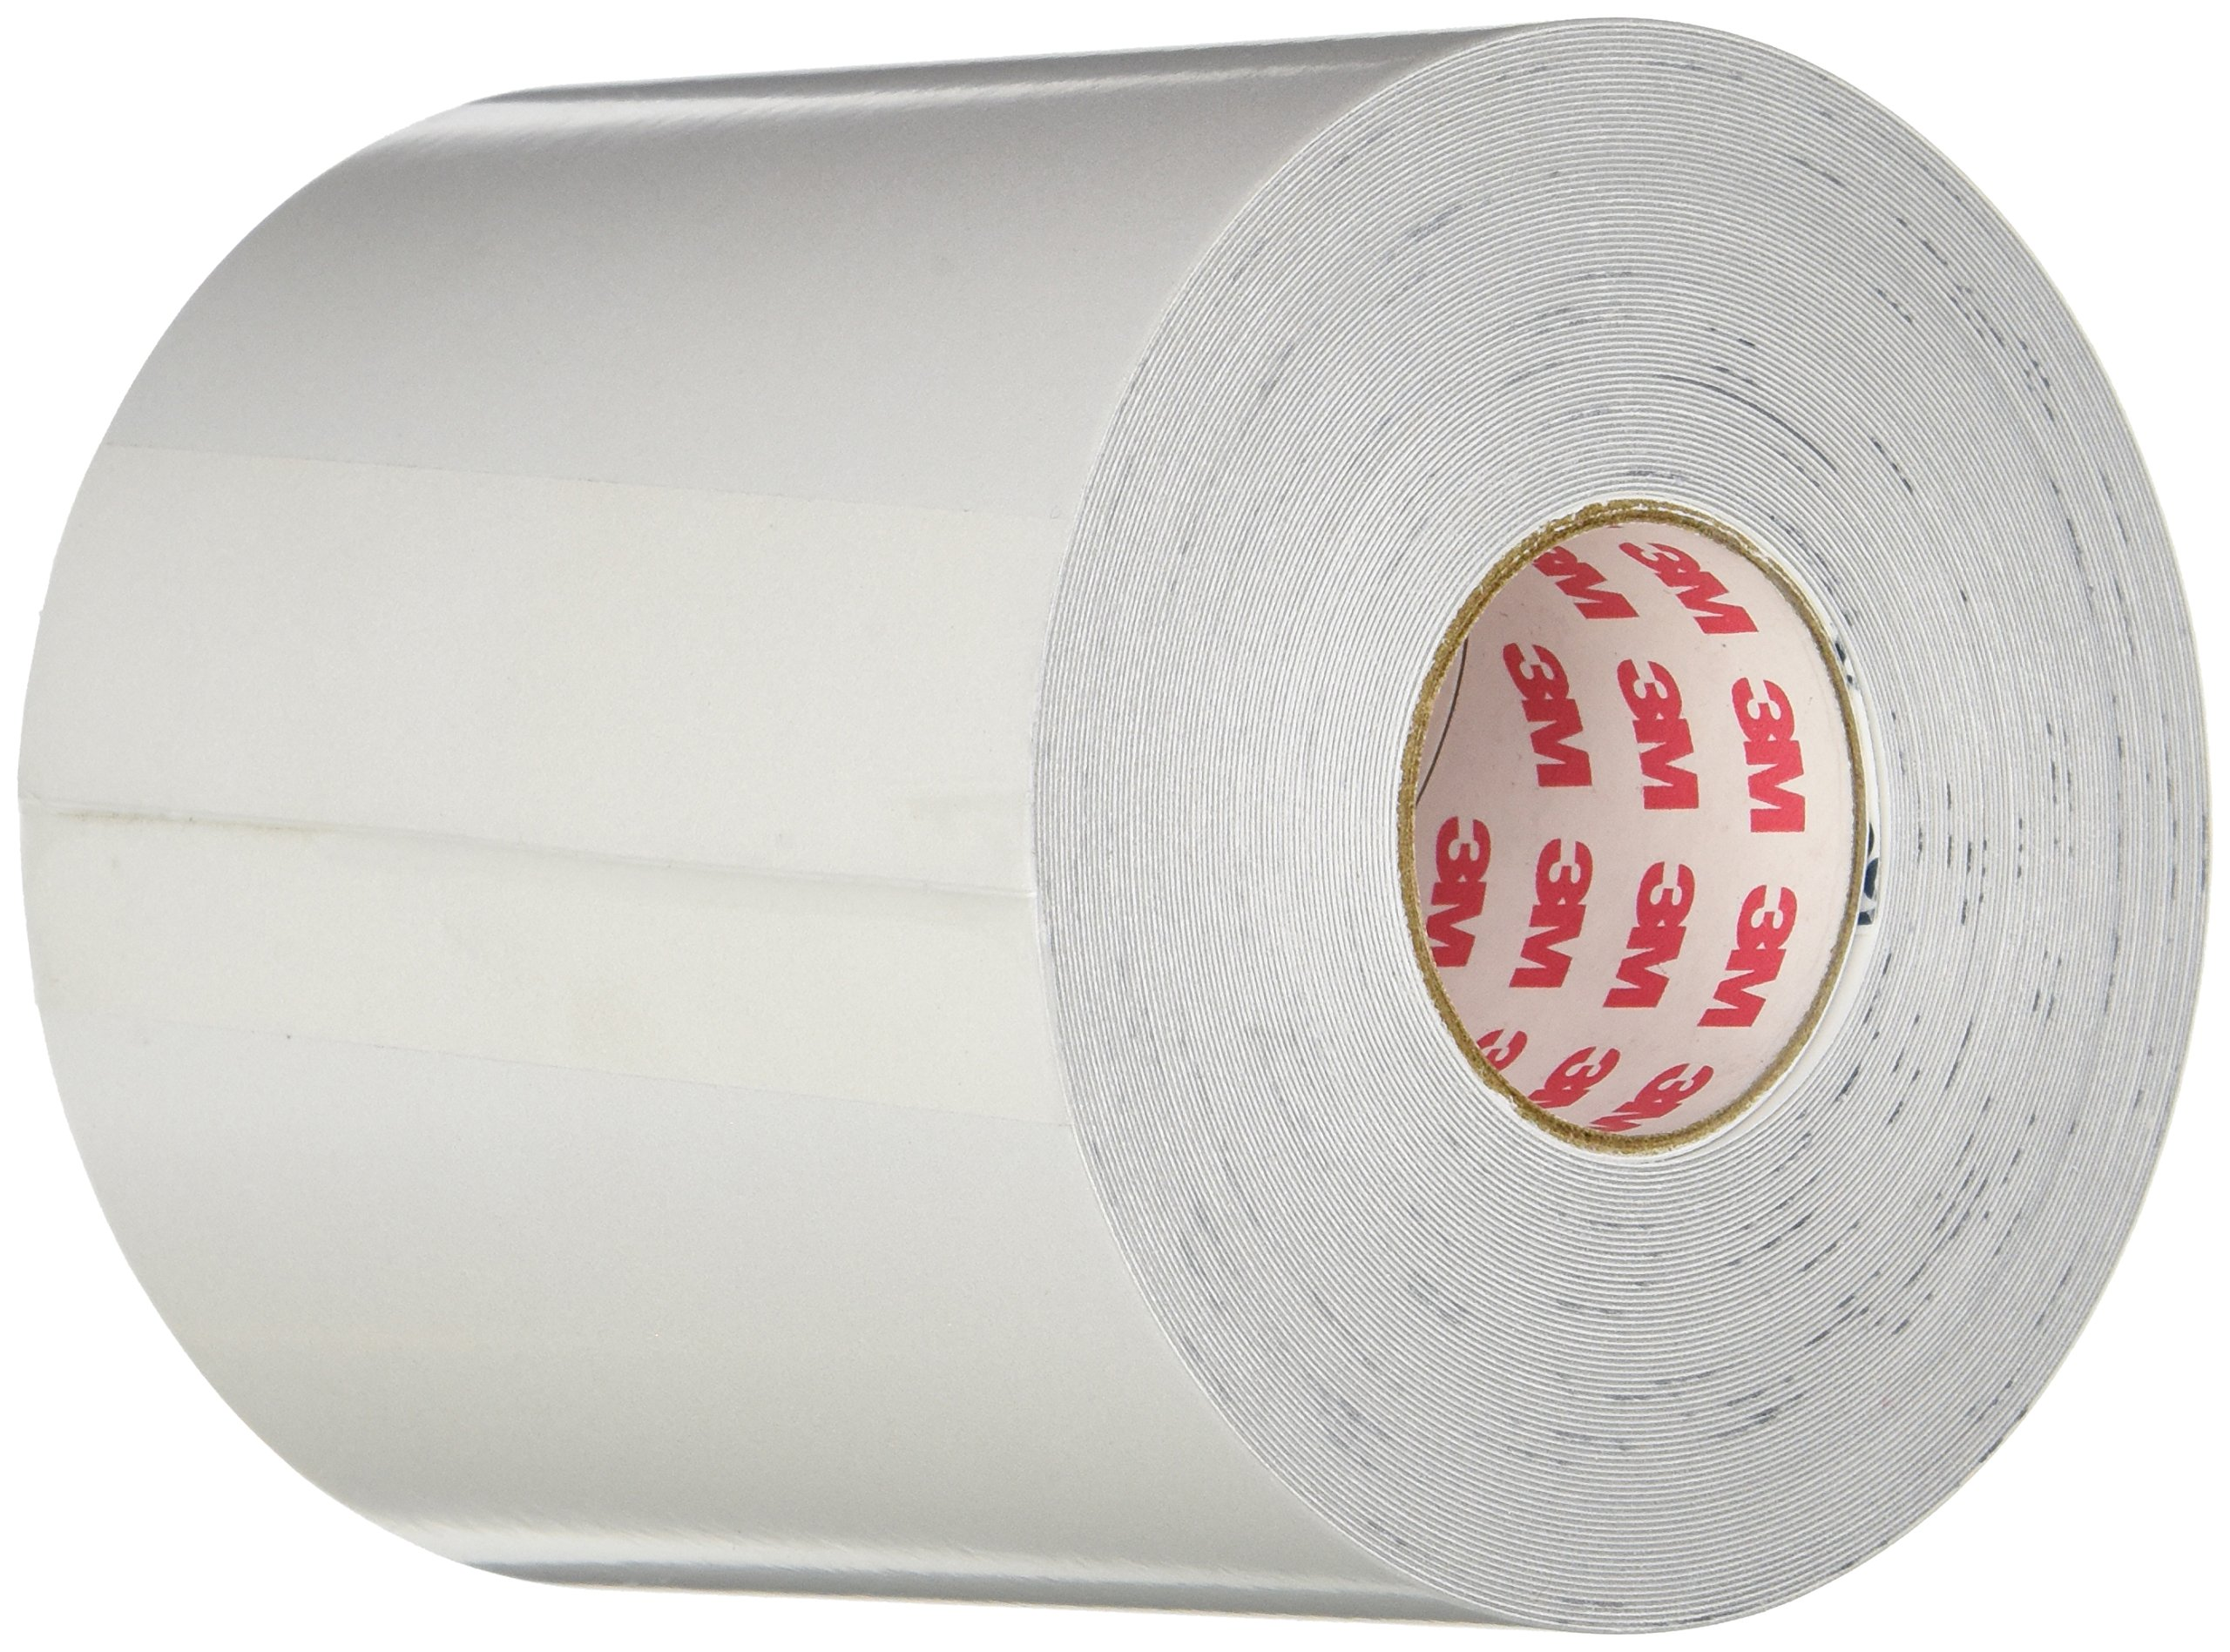 3M Scotchlite Reflective Striping Tape, White, 4-Inch by 50-Foot